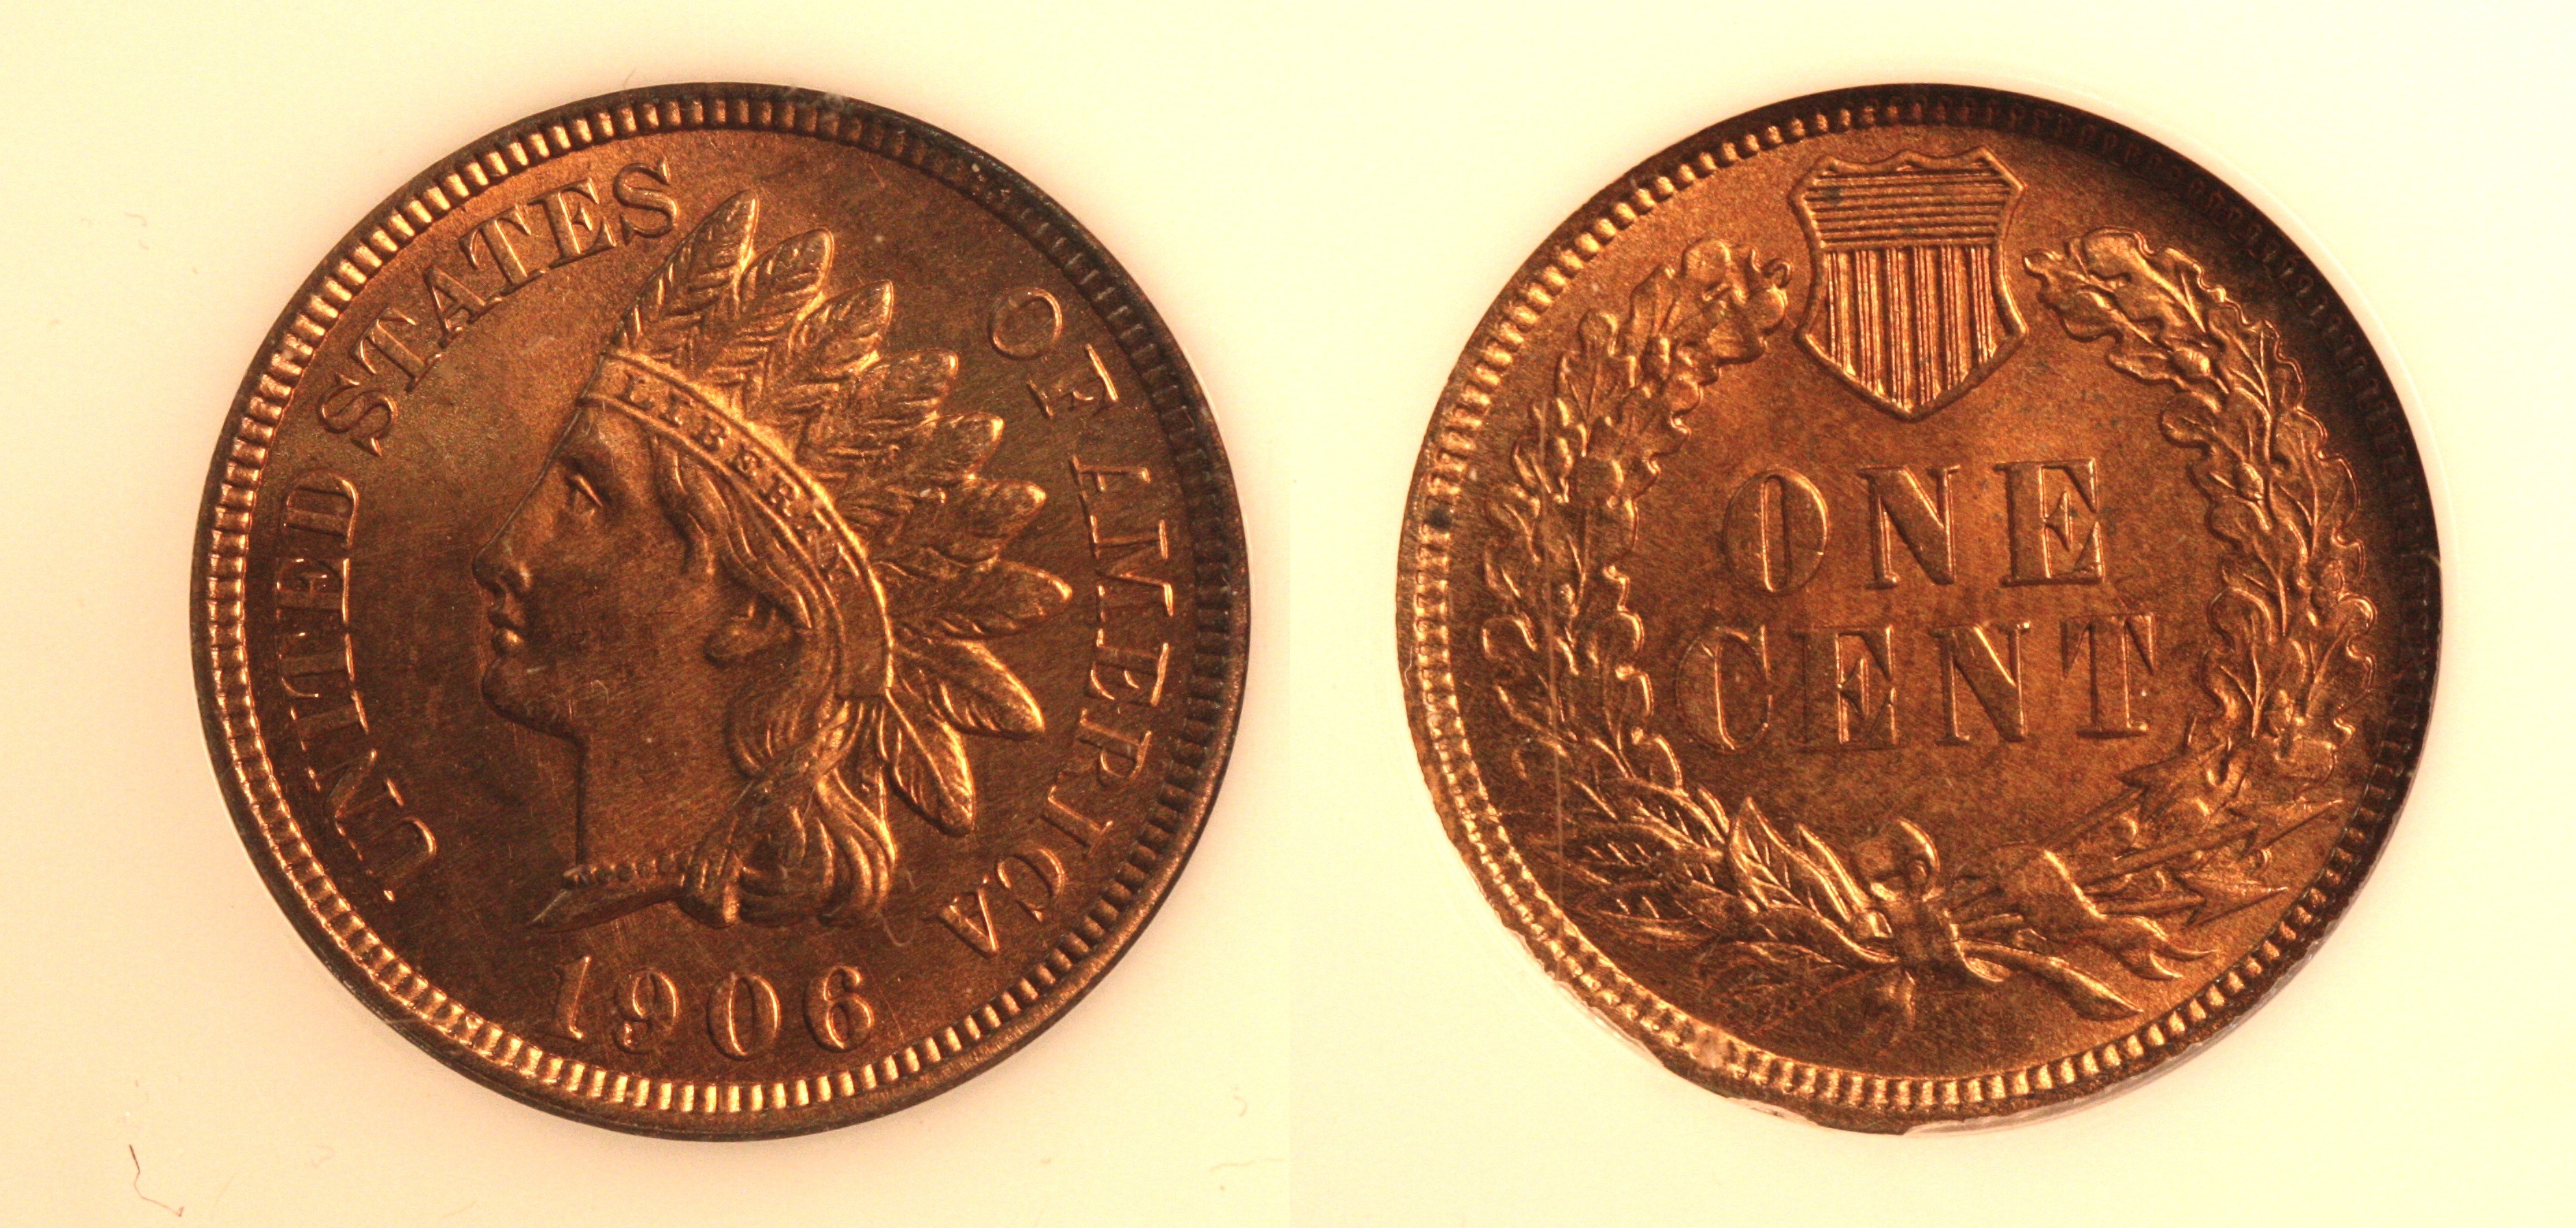 1906 Indian Head Cent PCI MS-65 Red camera